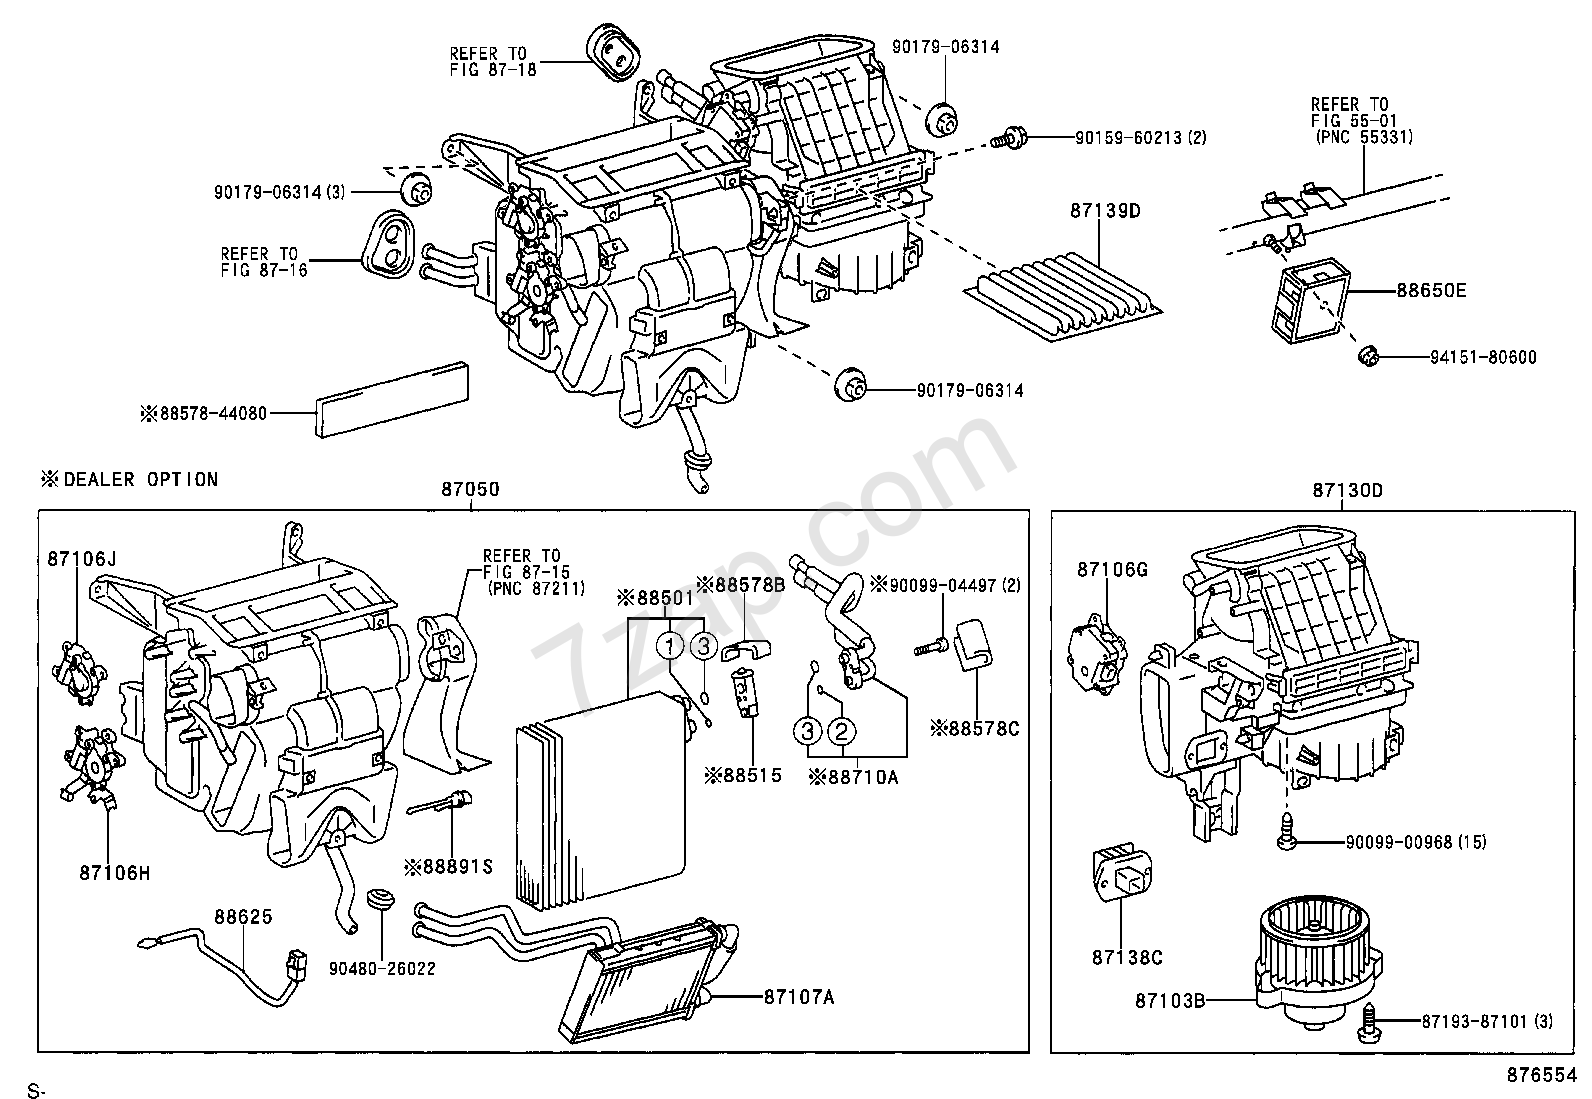 heating air conditioning cooler unit front manual air rh toyota 7zap com toyota picnic service manual pdf toyota picnic manual 1997